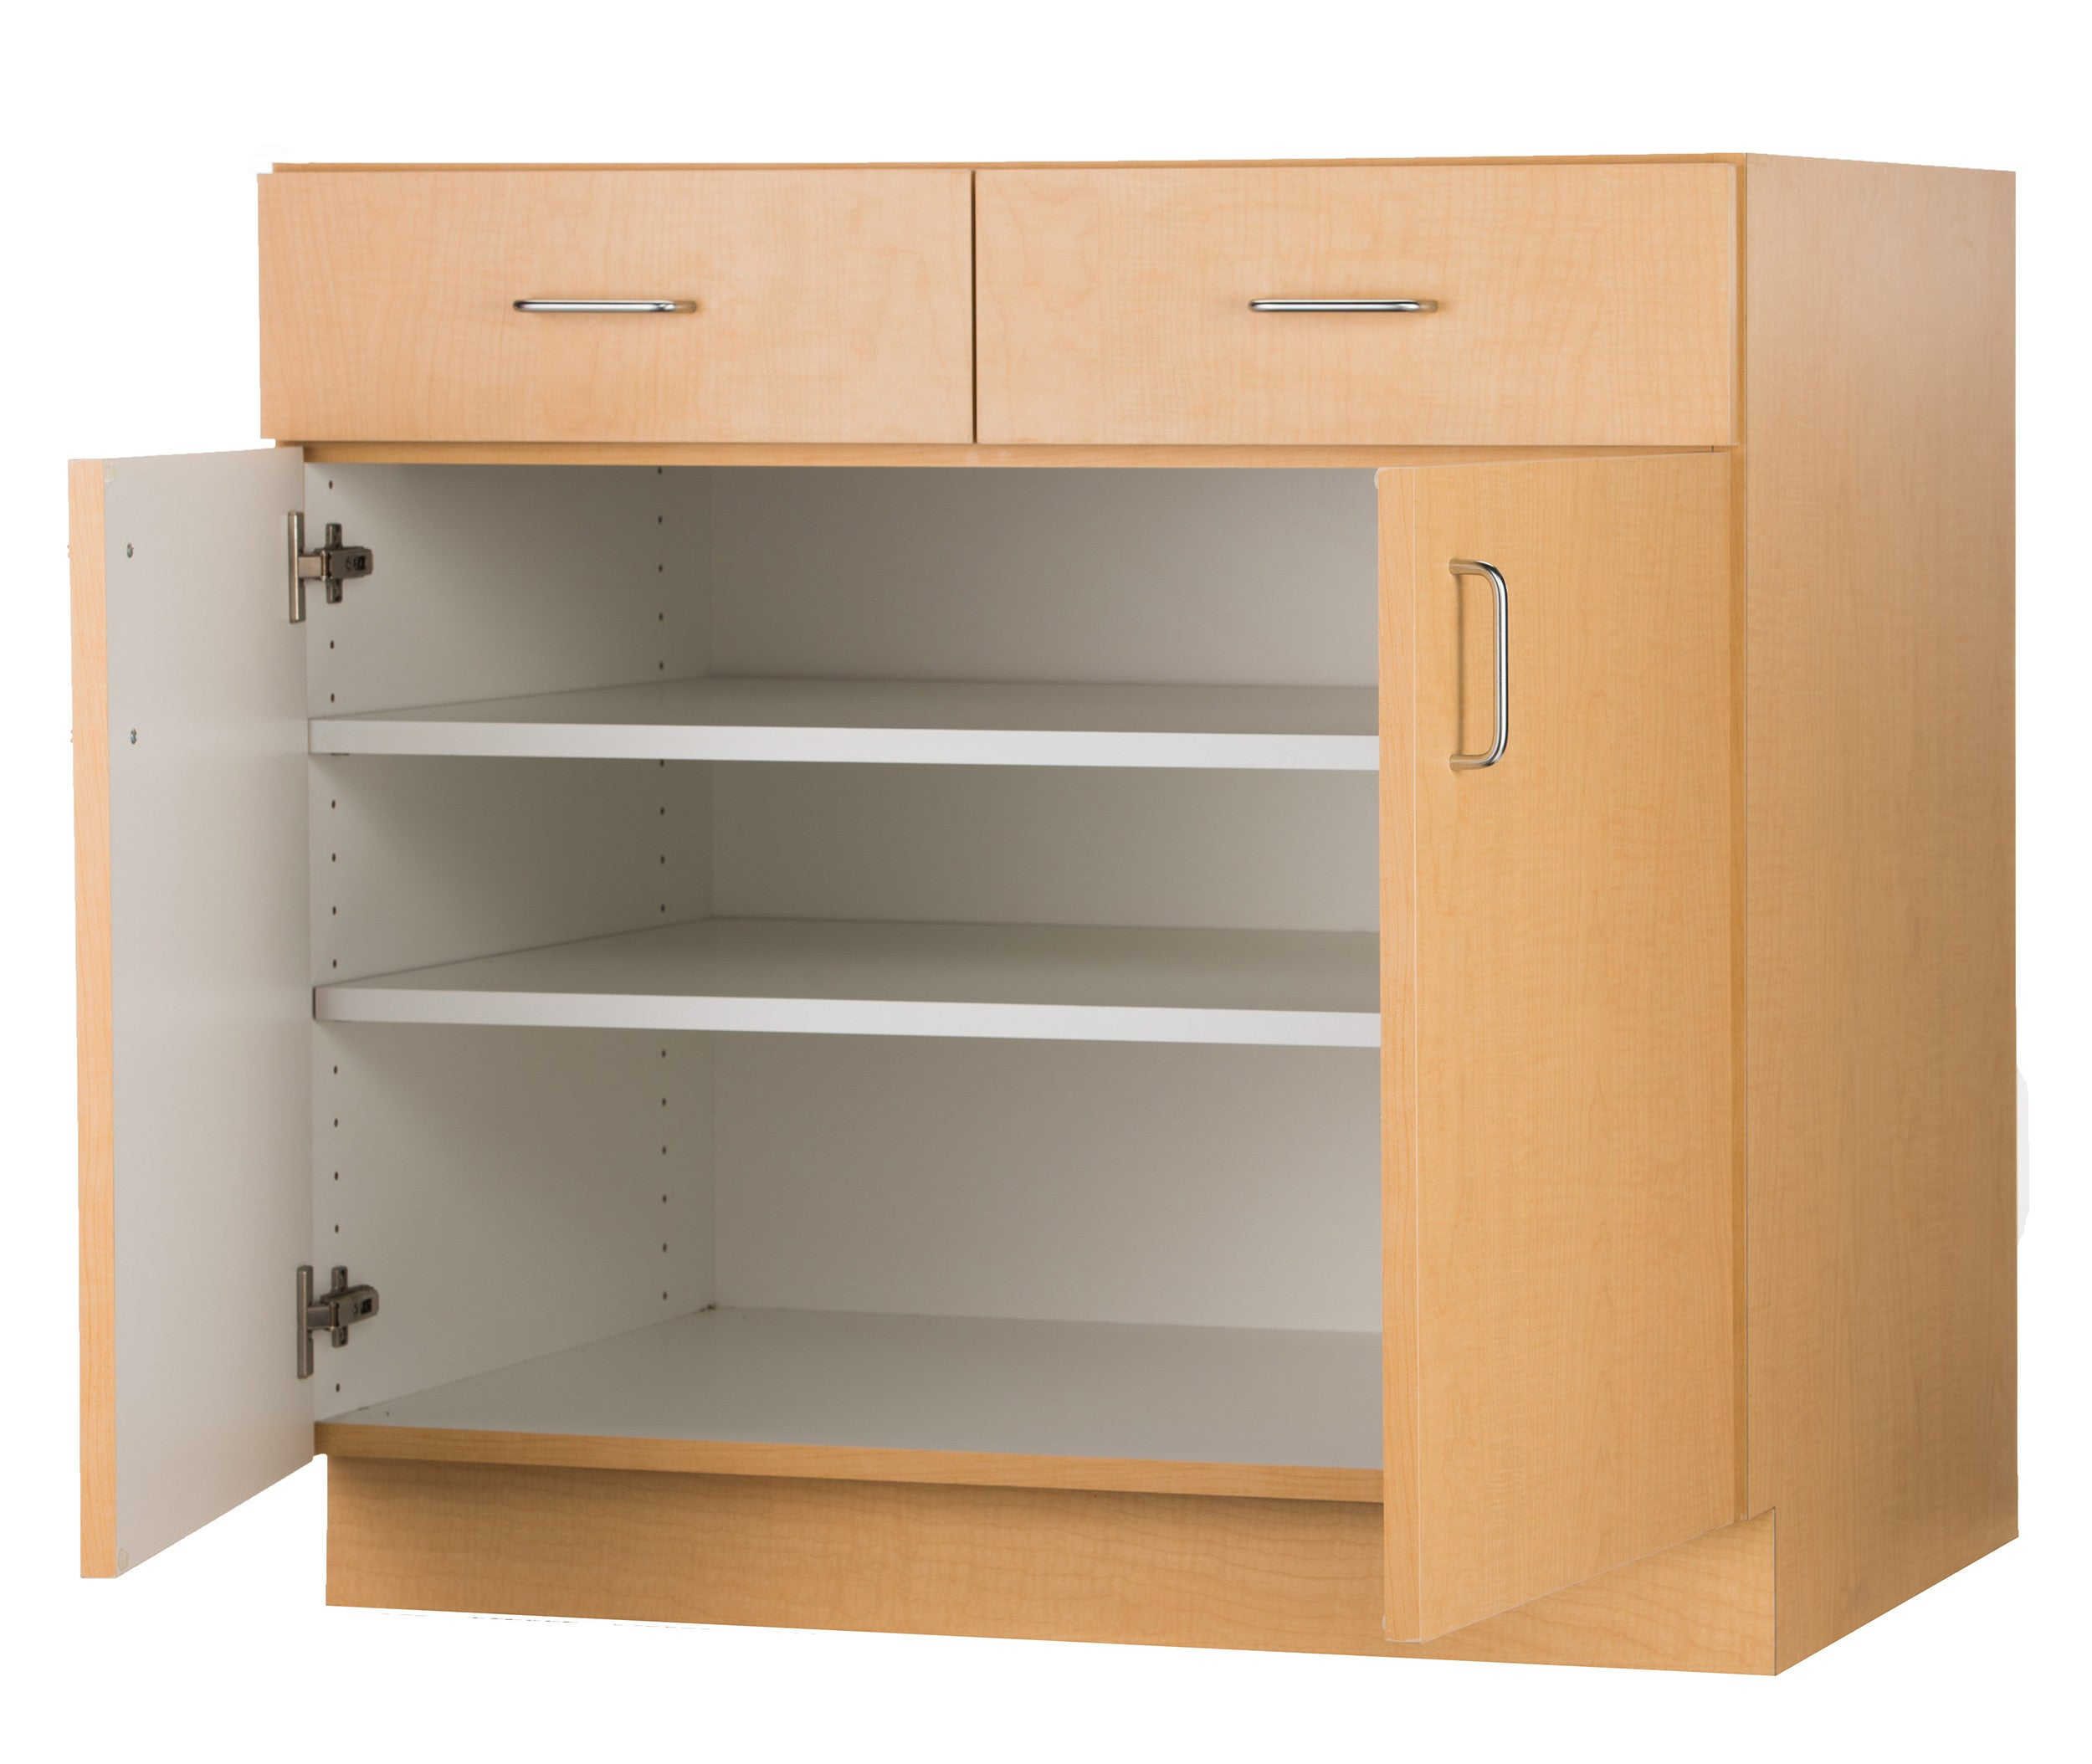 base cabinet with double door + double drawer